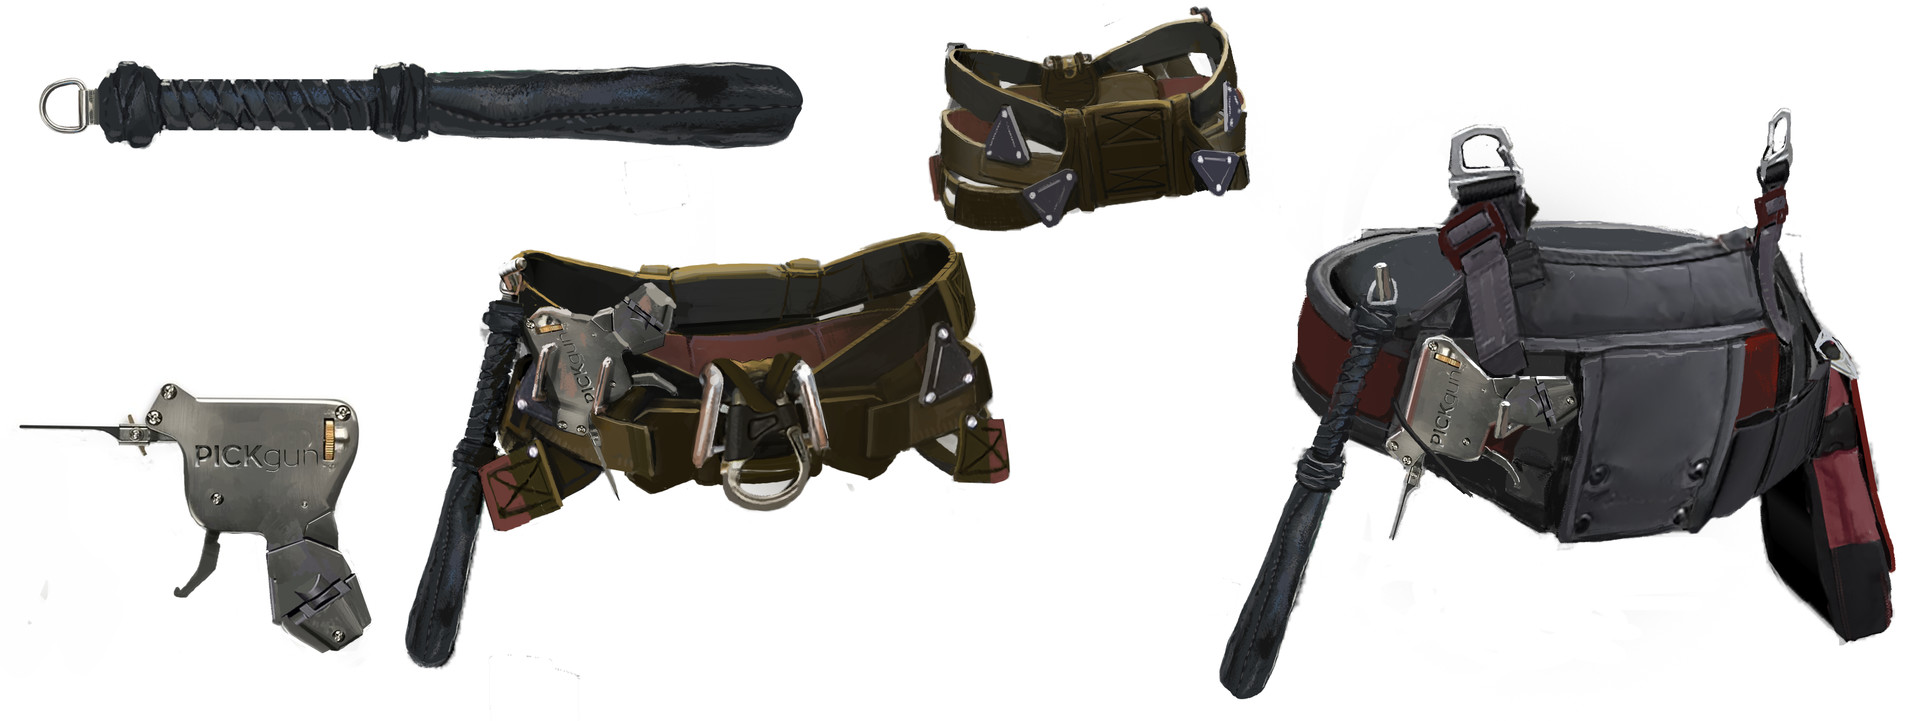 Infiltrator Equipment belts